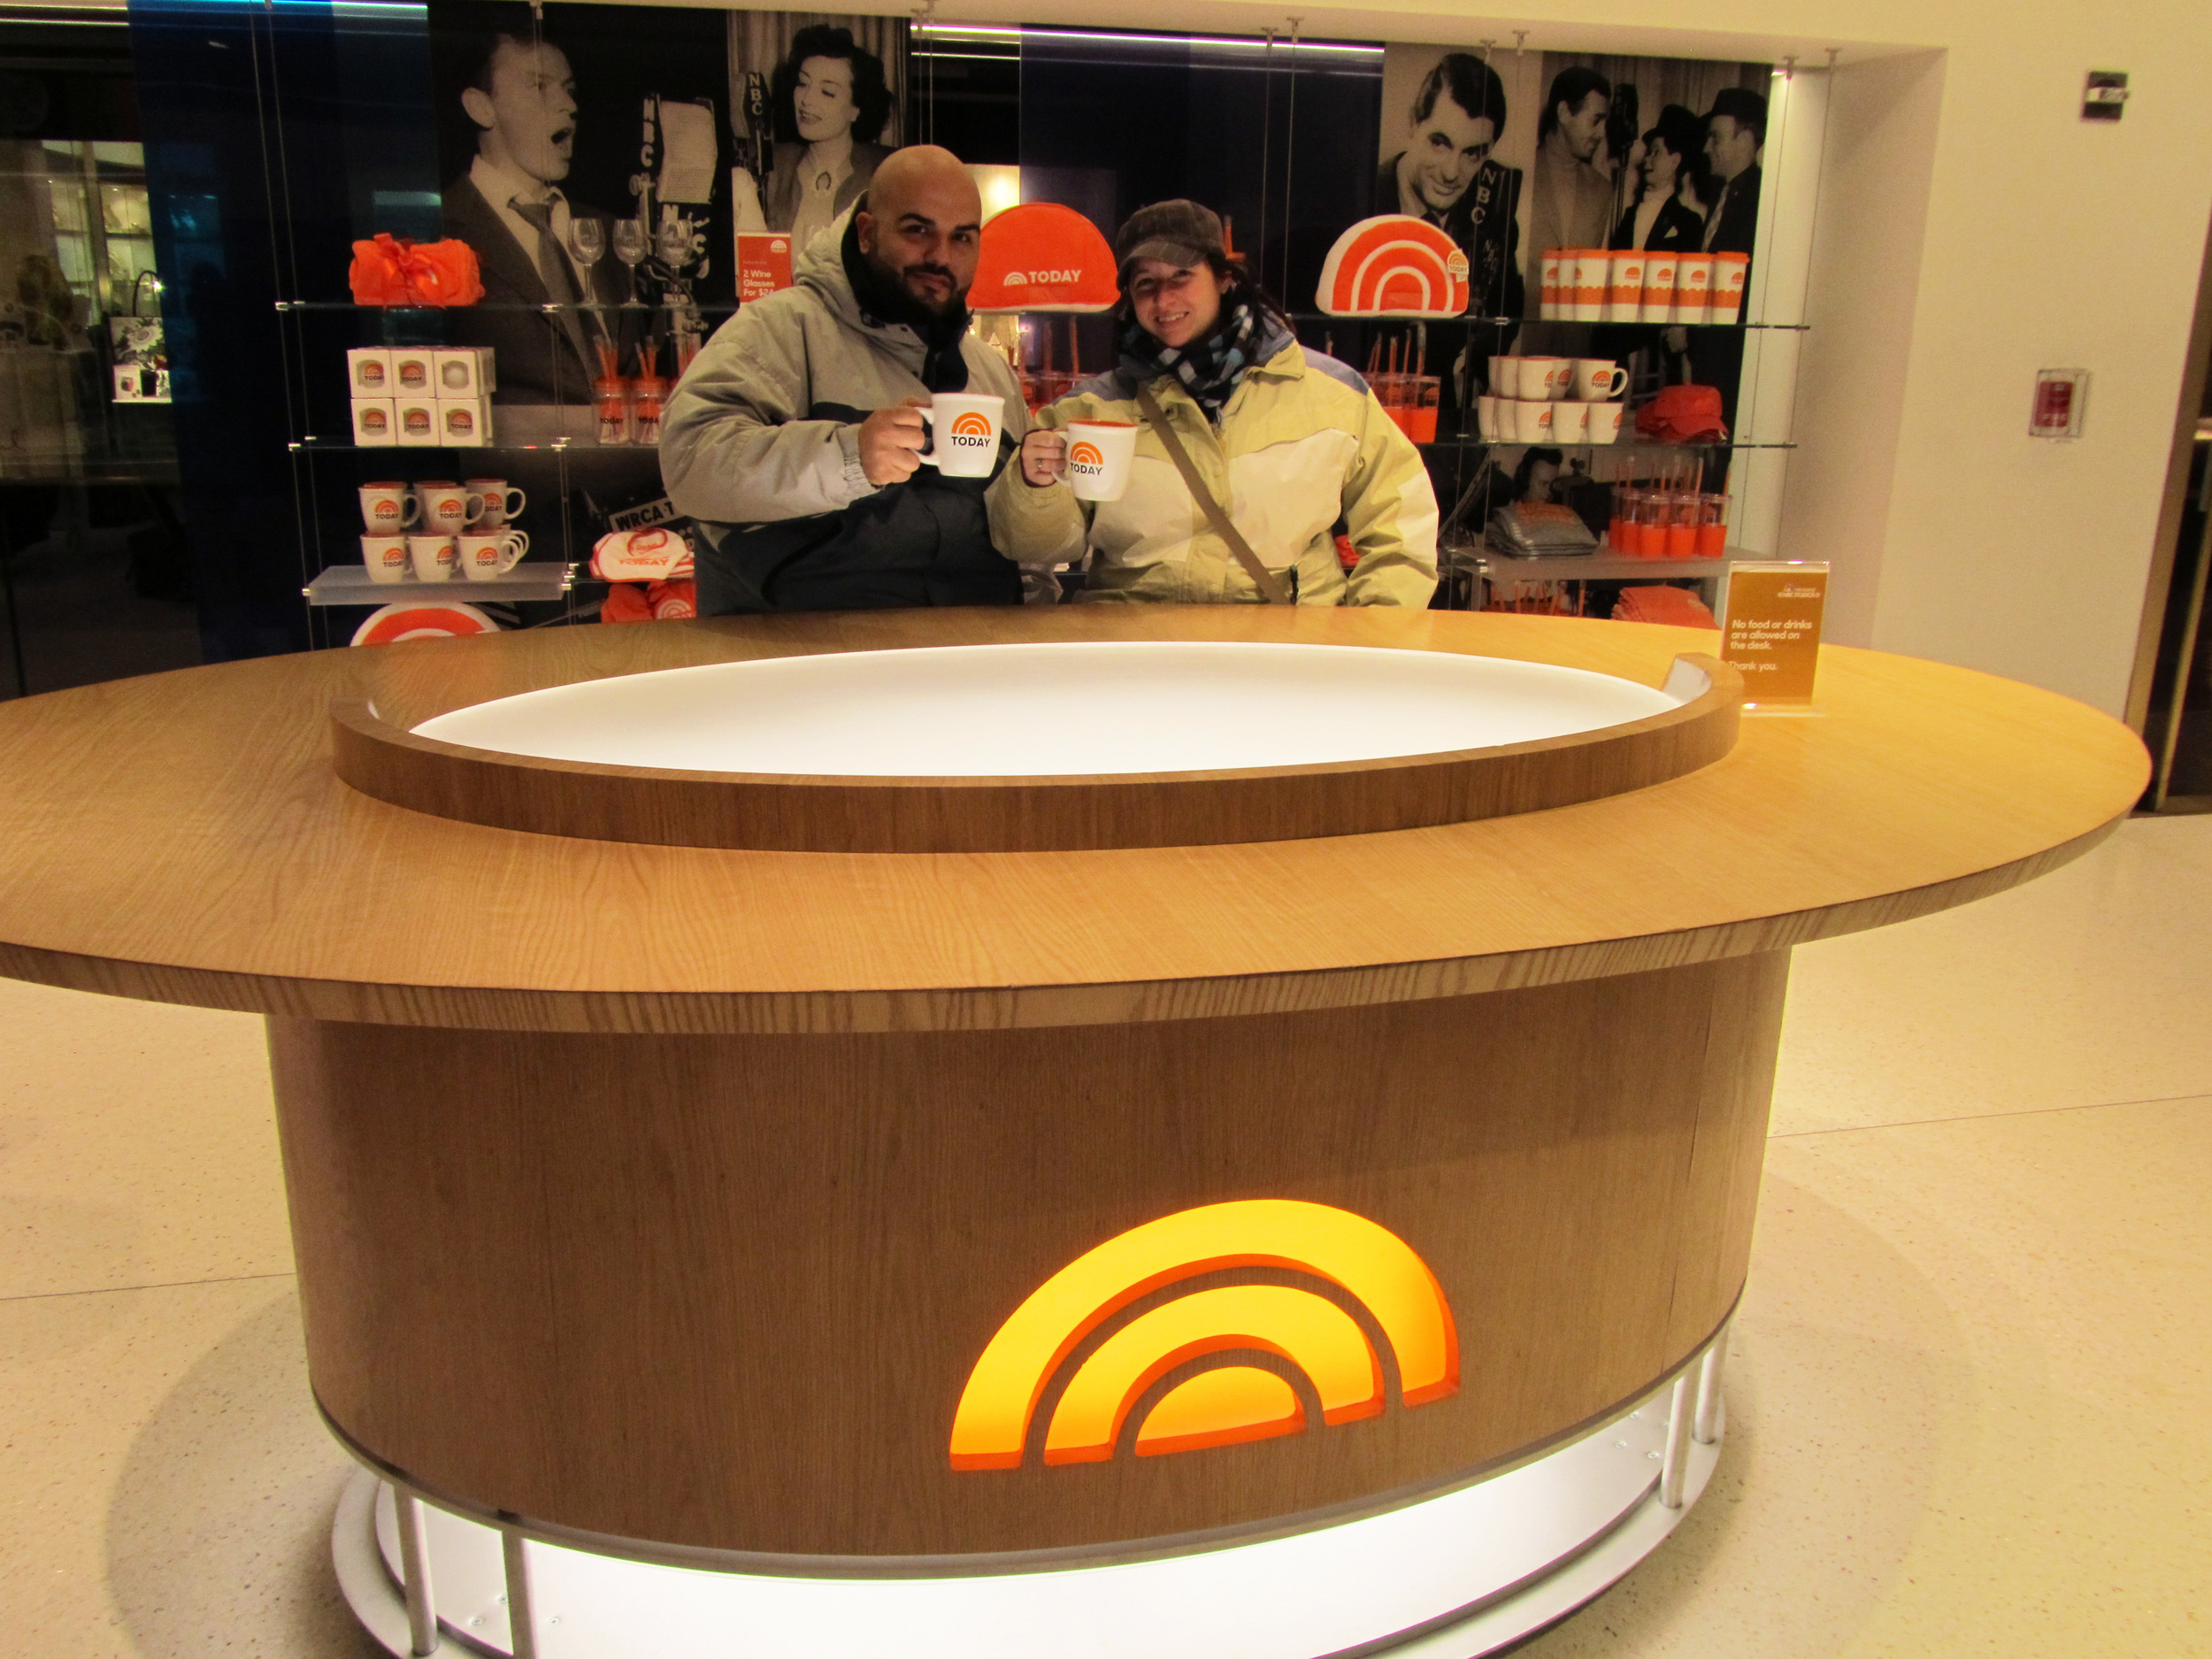 Let's not forget to mention checking out the NBC Building in Rockefeller Center and sitting at the Today Show Desk